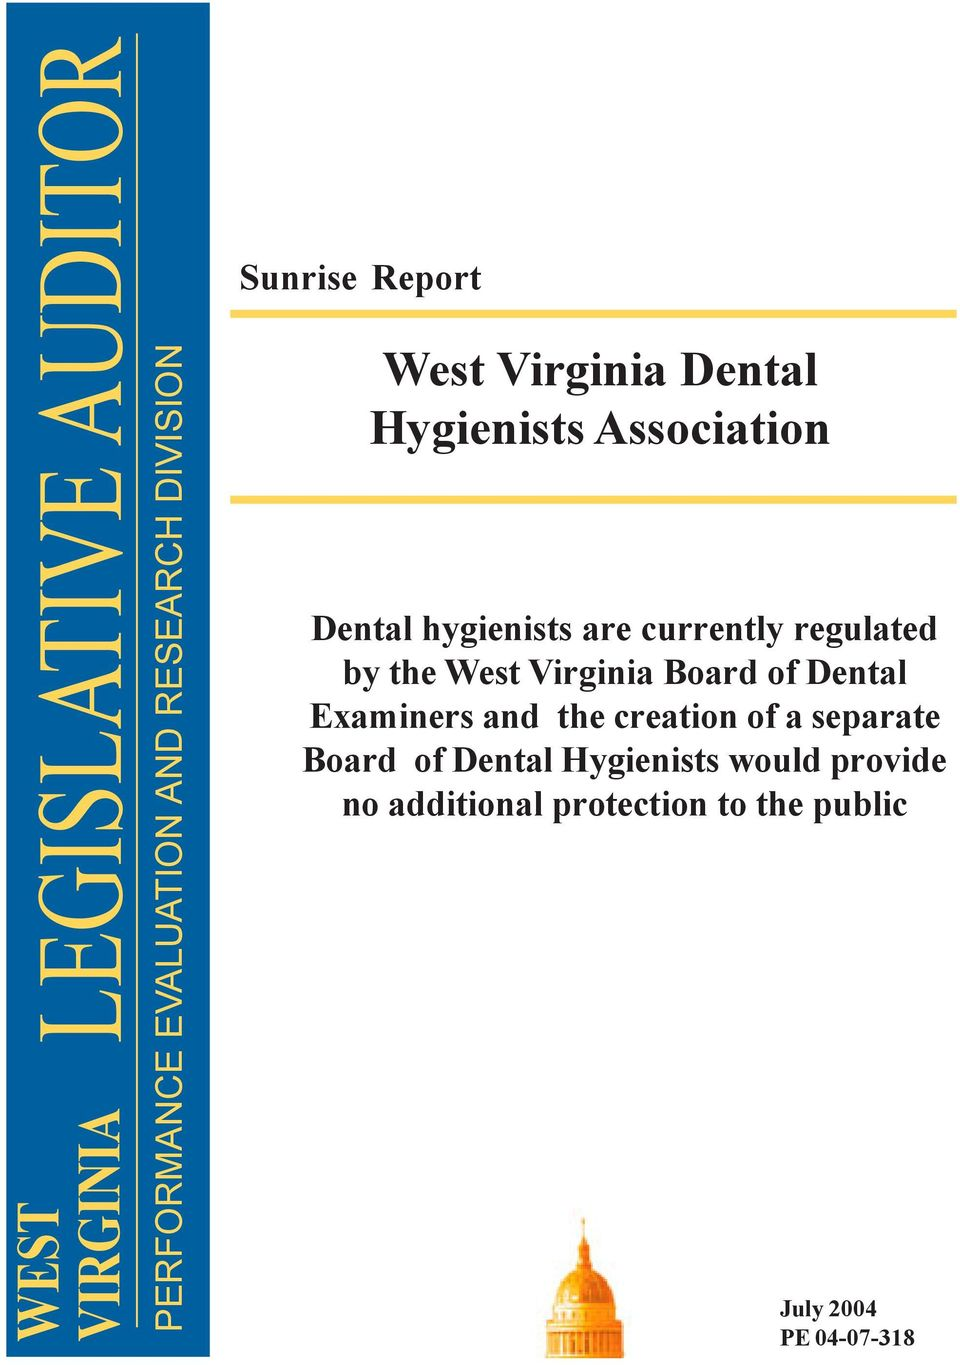 regulated by the West Virginia Board of Dental Examiners and the creation of a separate